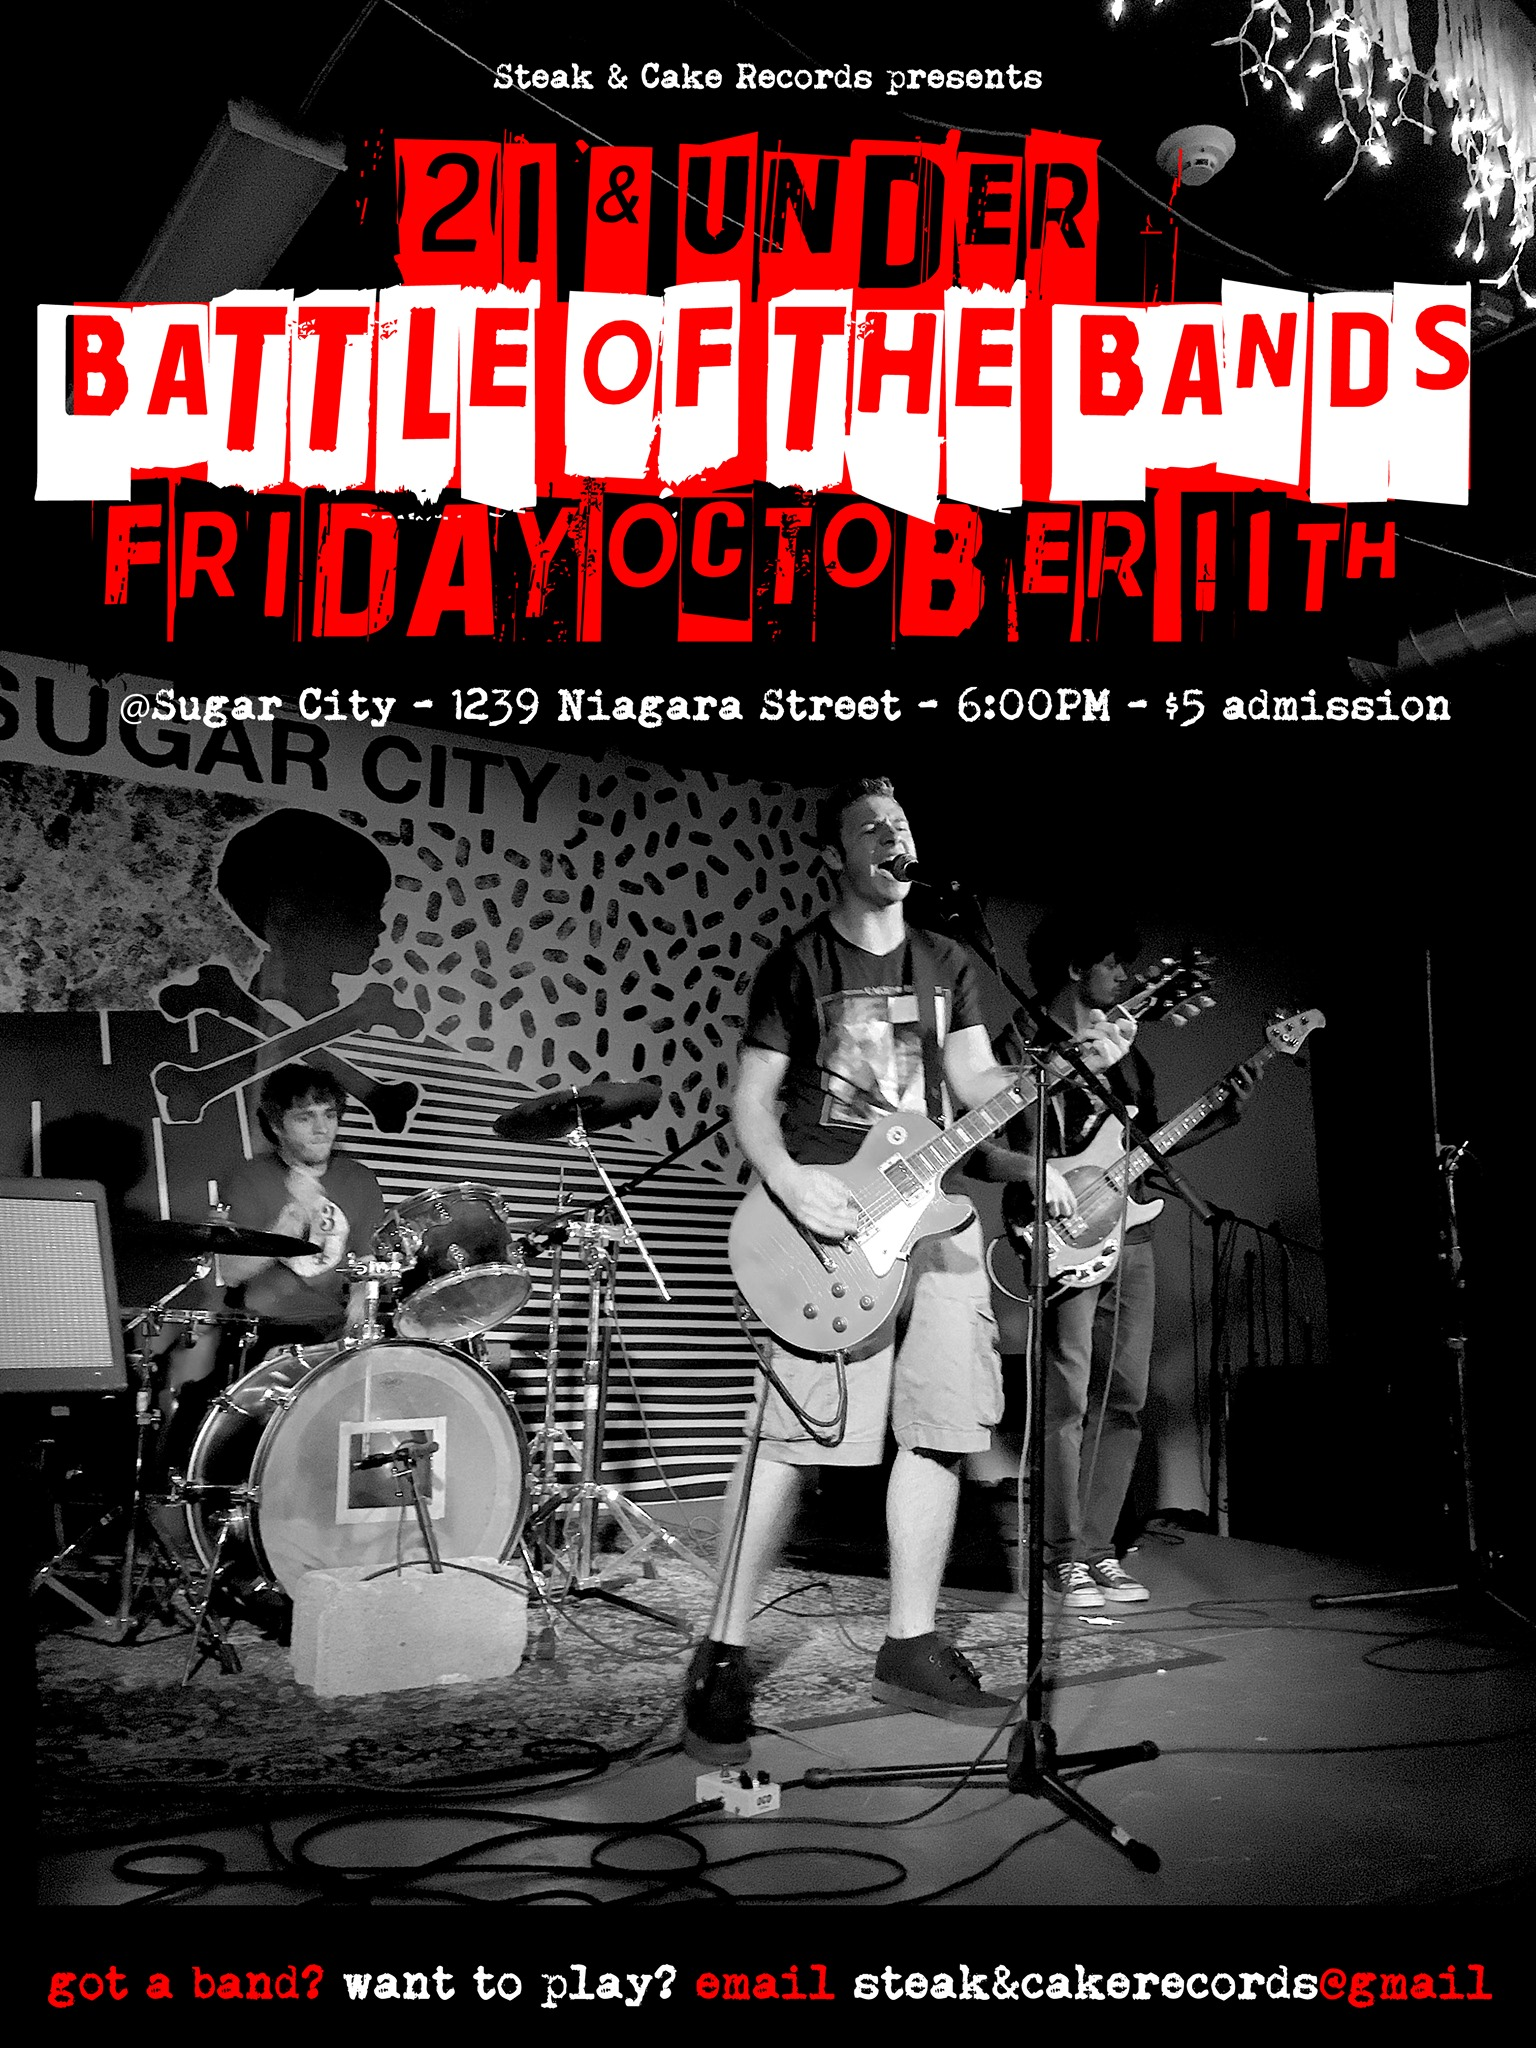 Tonight: 21 & Under Battle of the Bands